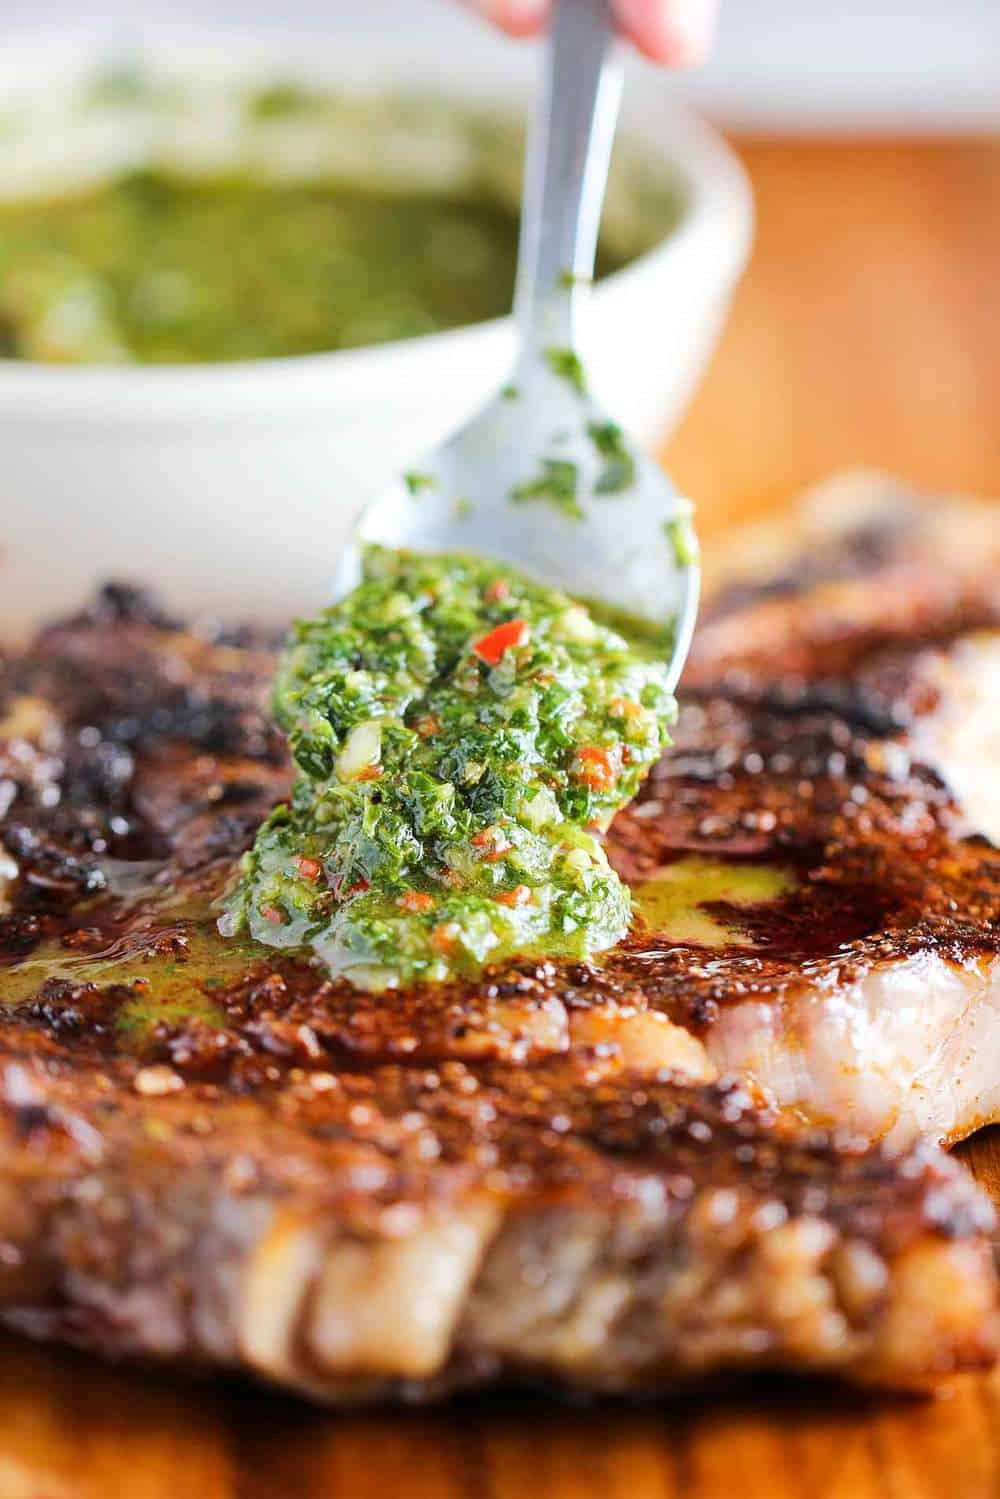 grilled cowboy ribeye steak with chimichurri sauce